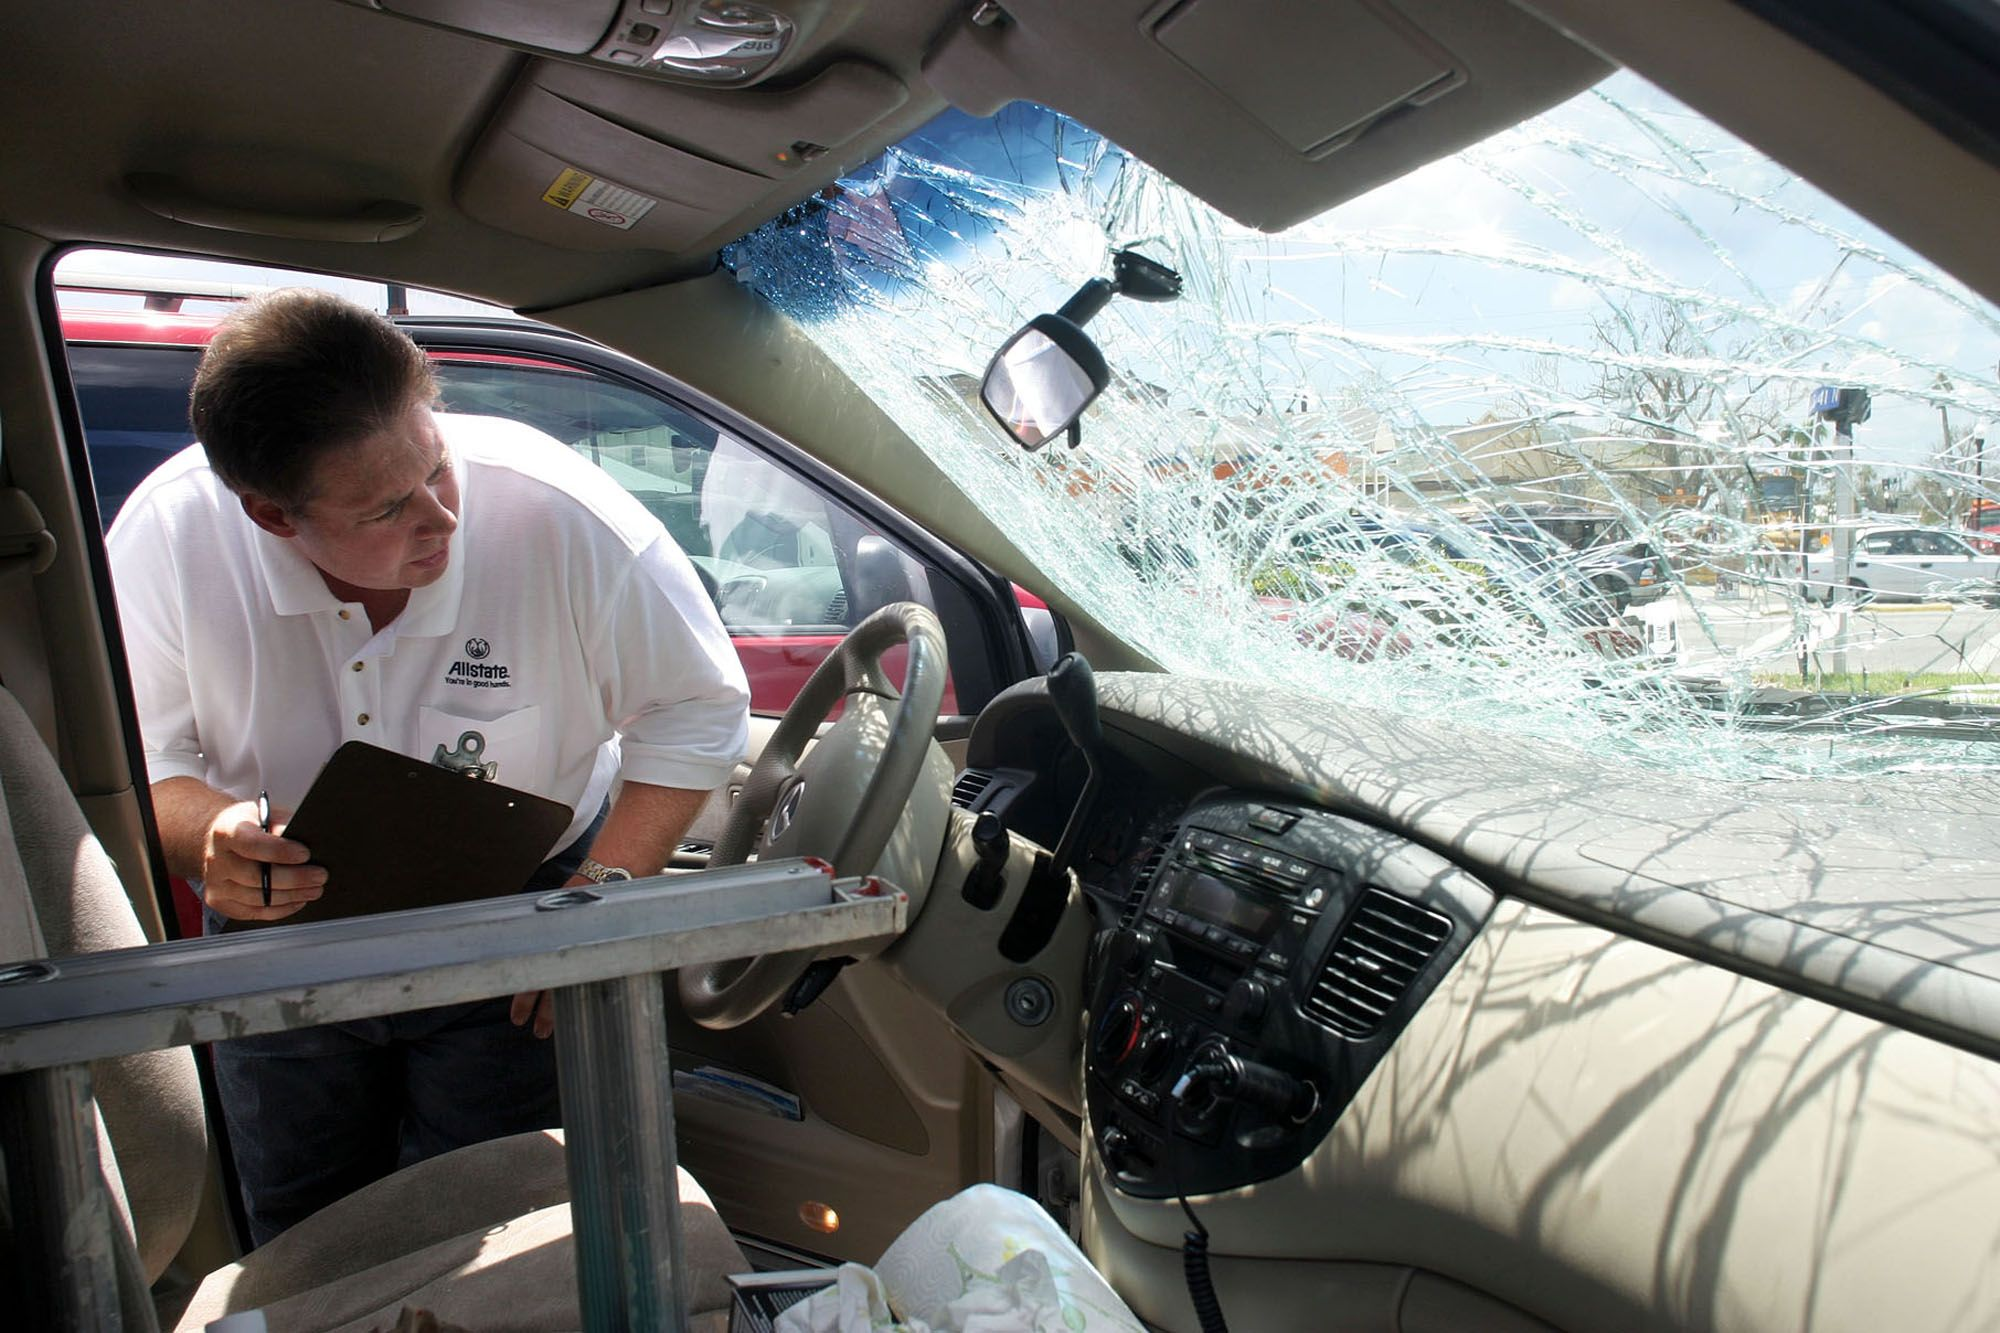 Since Public Adjusters Get Paid A Percentage Based On The